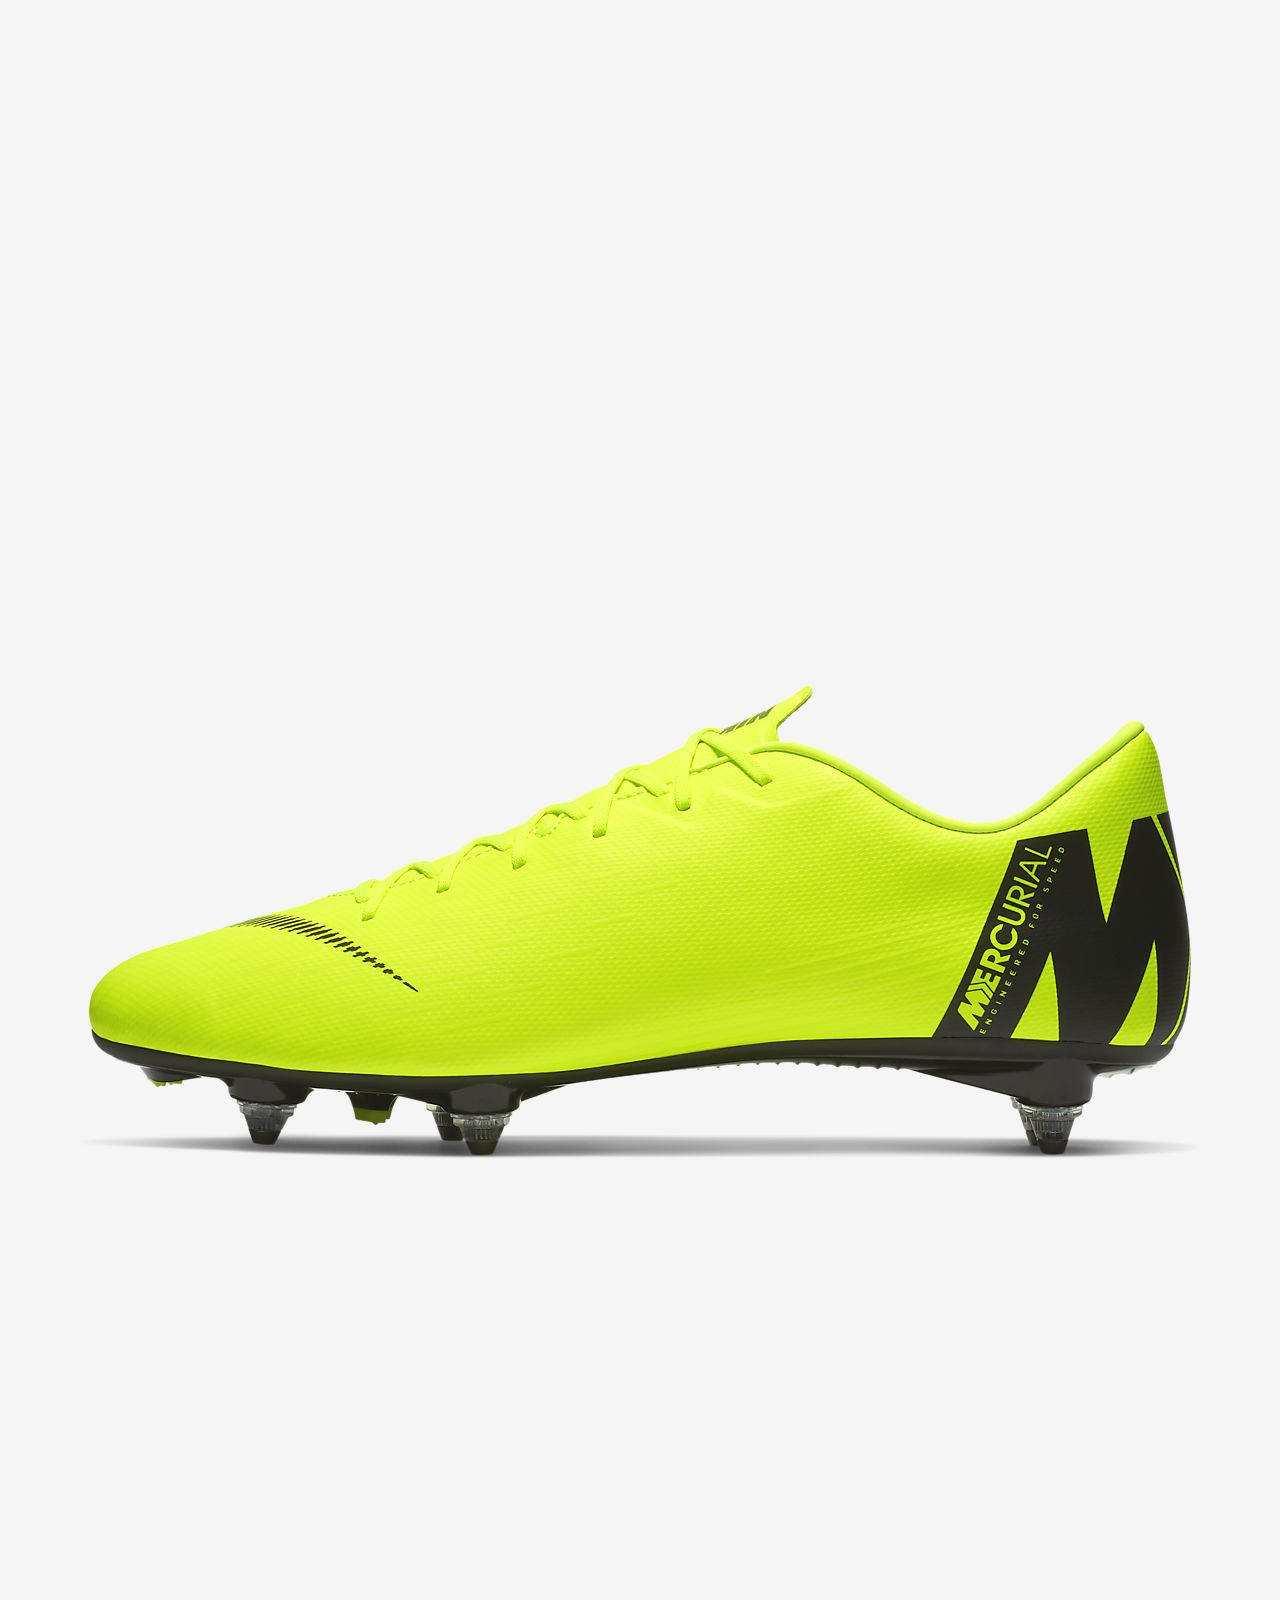 c2523b6d5de Nike Mercurial Vapor XII Academy SG-PRO Soft-Ground Football Boot ...